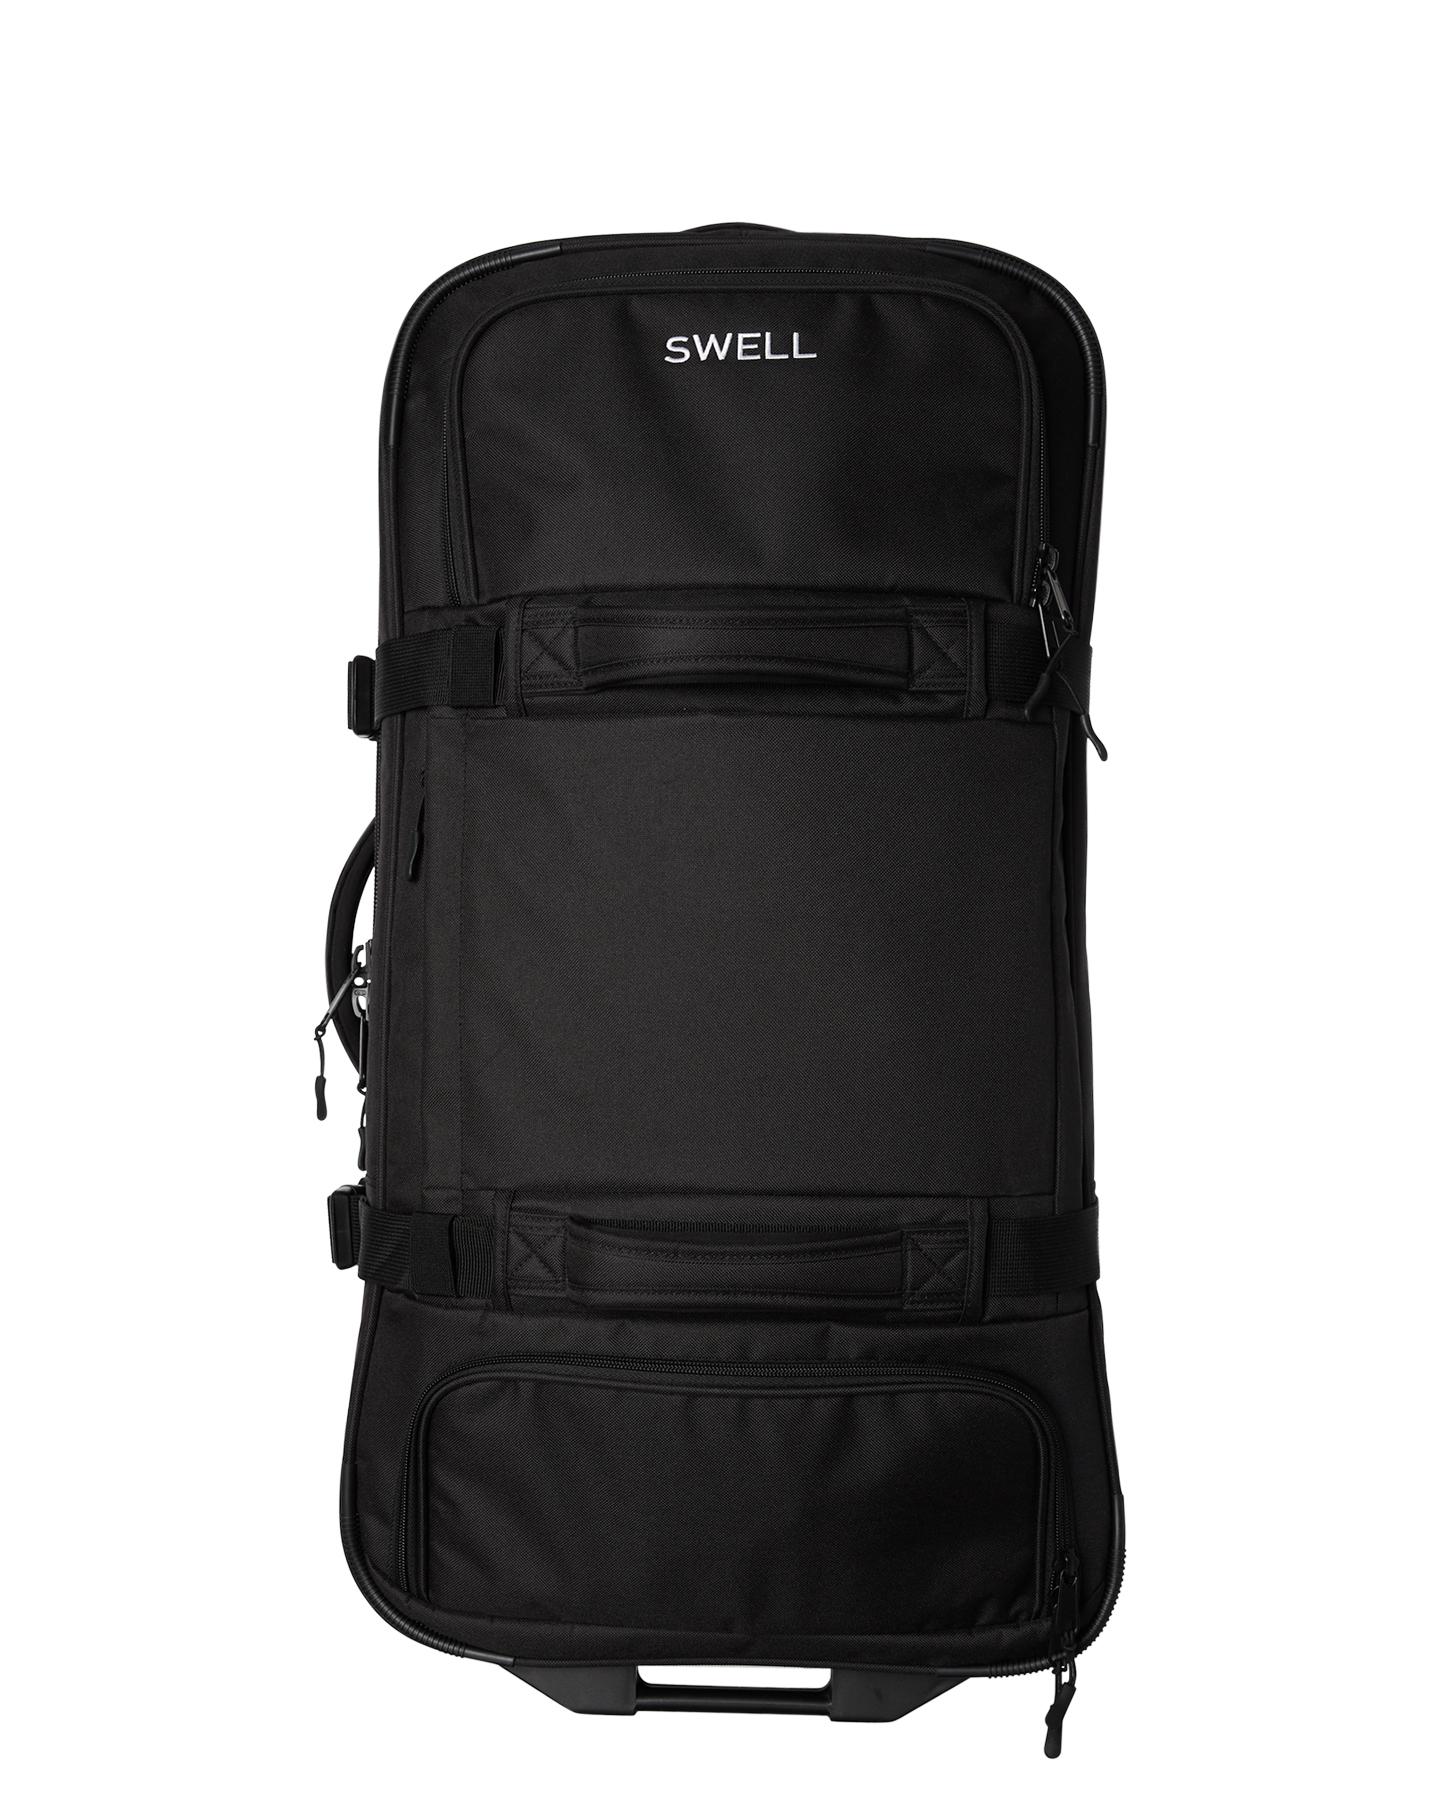 Swell Trooper 85l Travel Bag Black 9350907041936